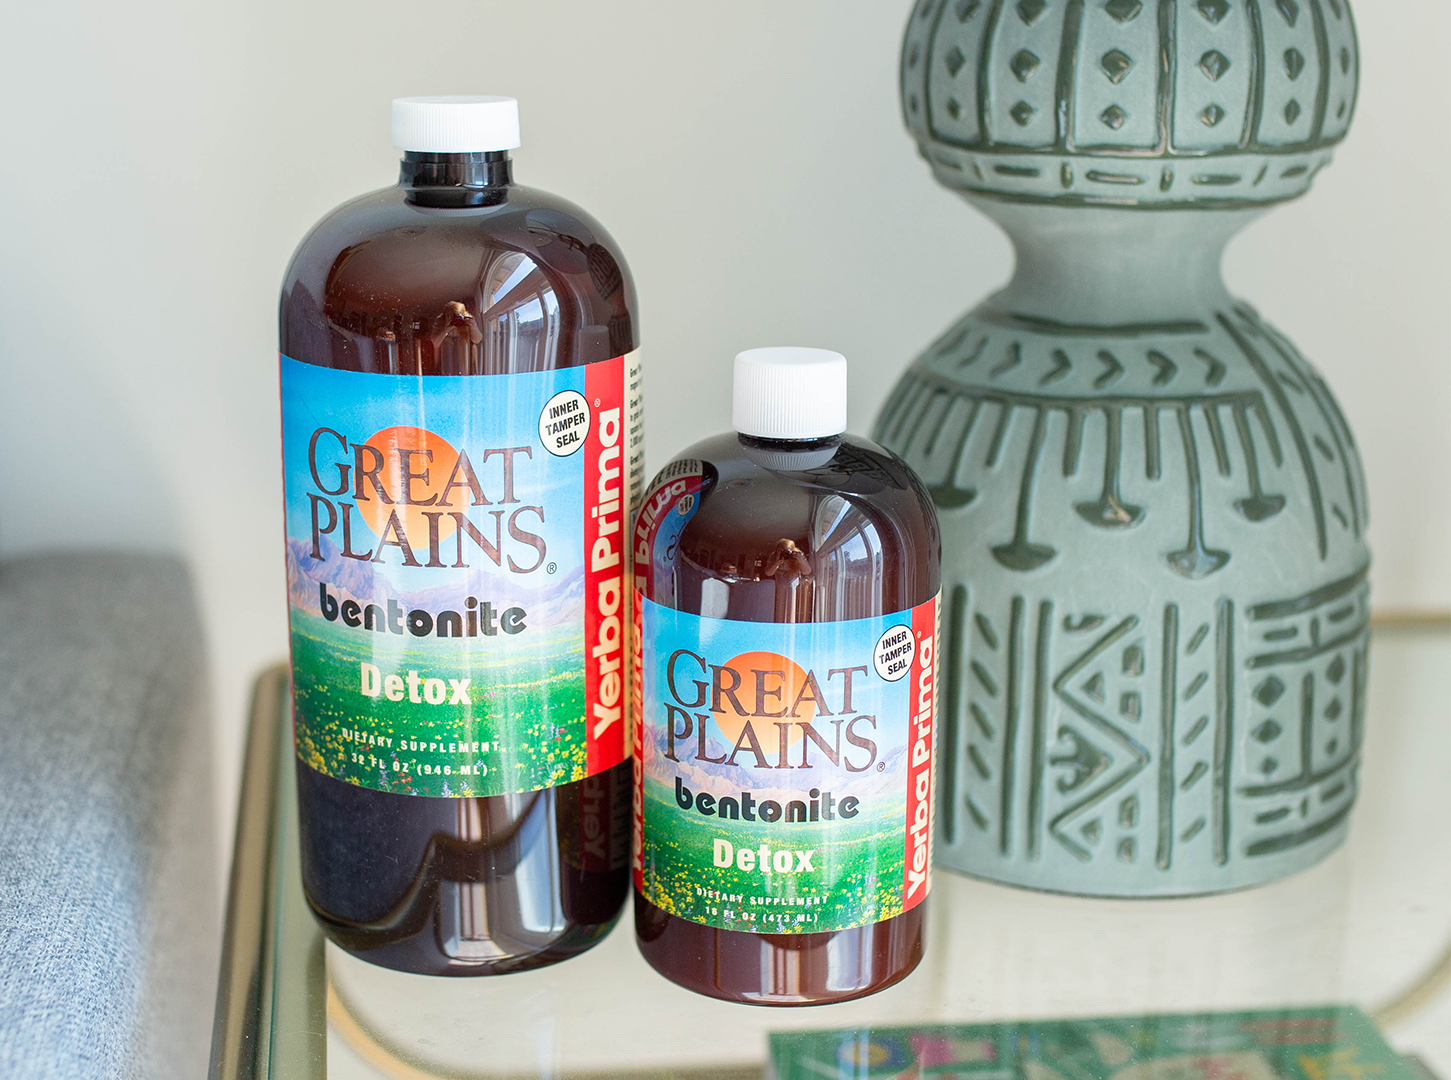 TIME TO DETOXIFY. THE BEST-SELLING GREAT PLAINS BENTONITE IN PINT AND QUART ARE FINALLY BACK IN STOCK!